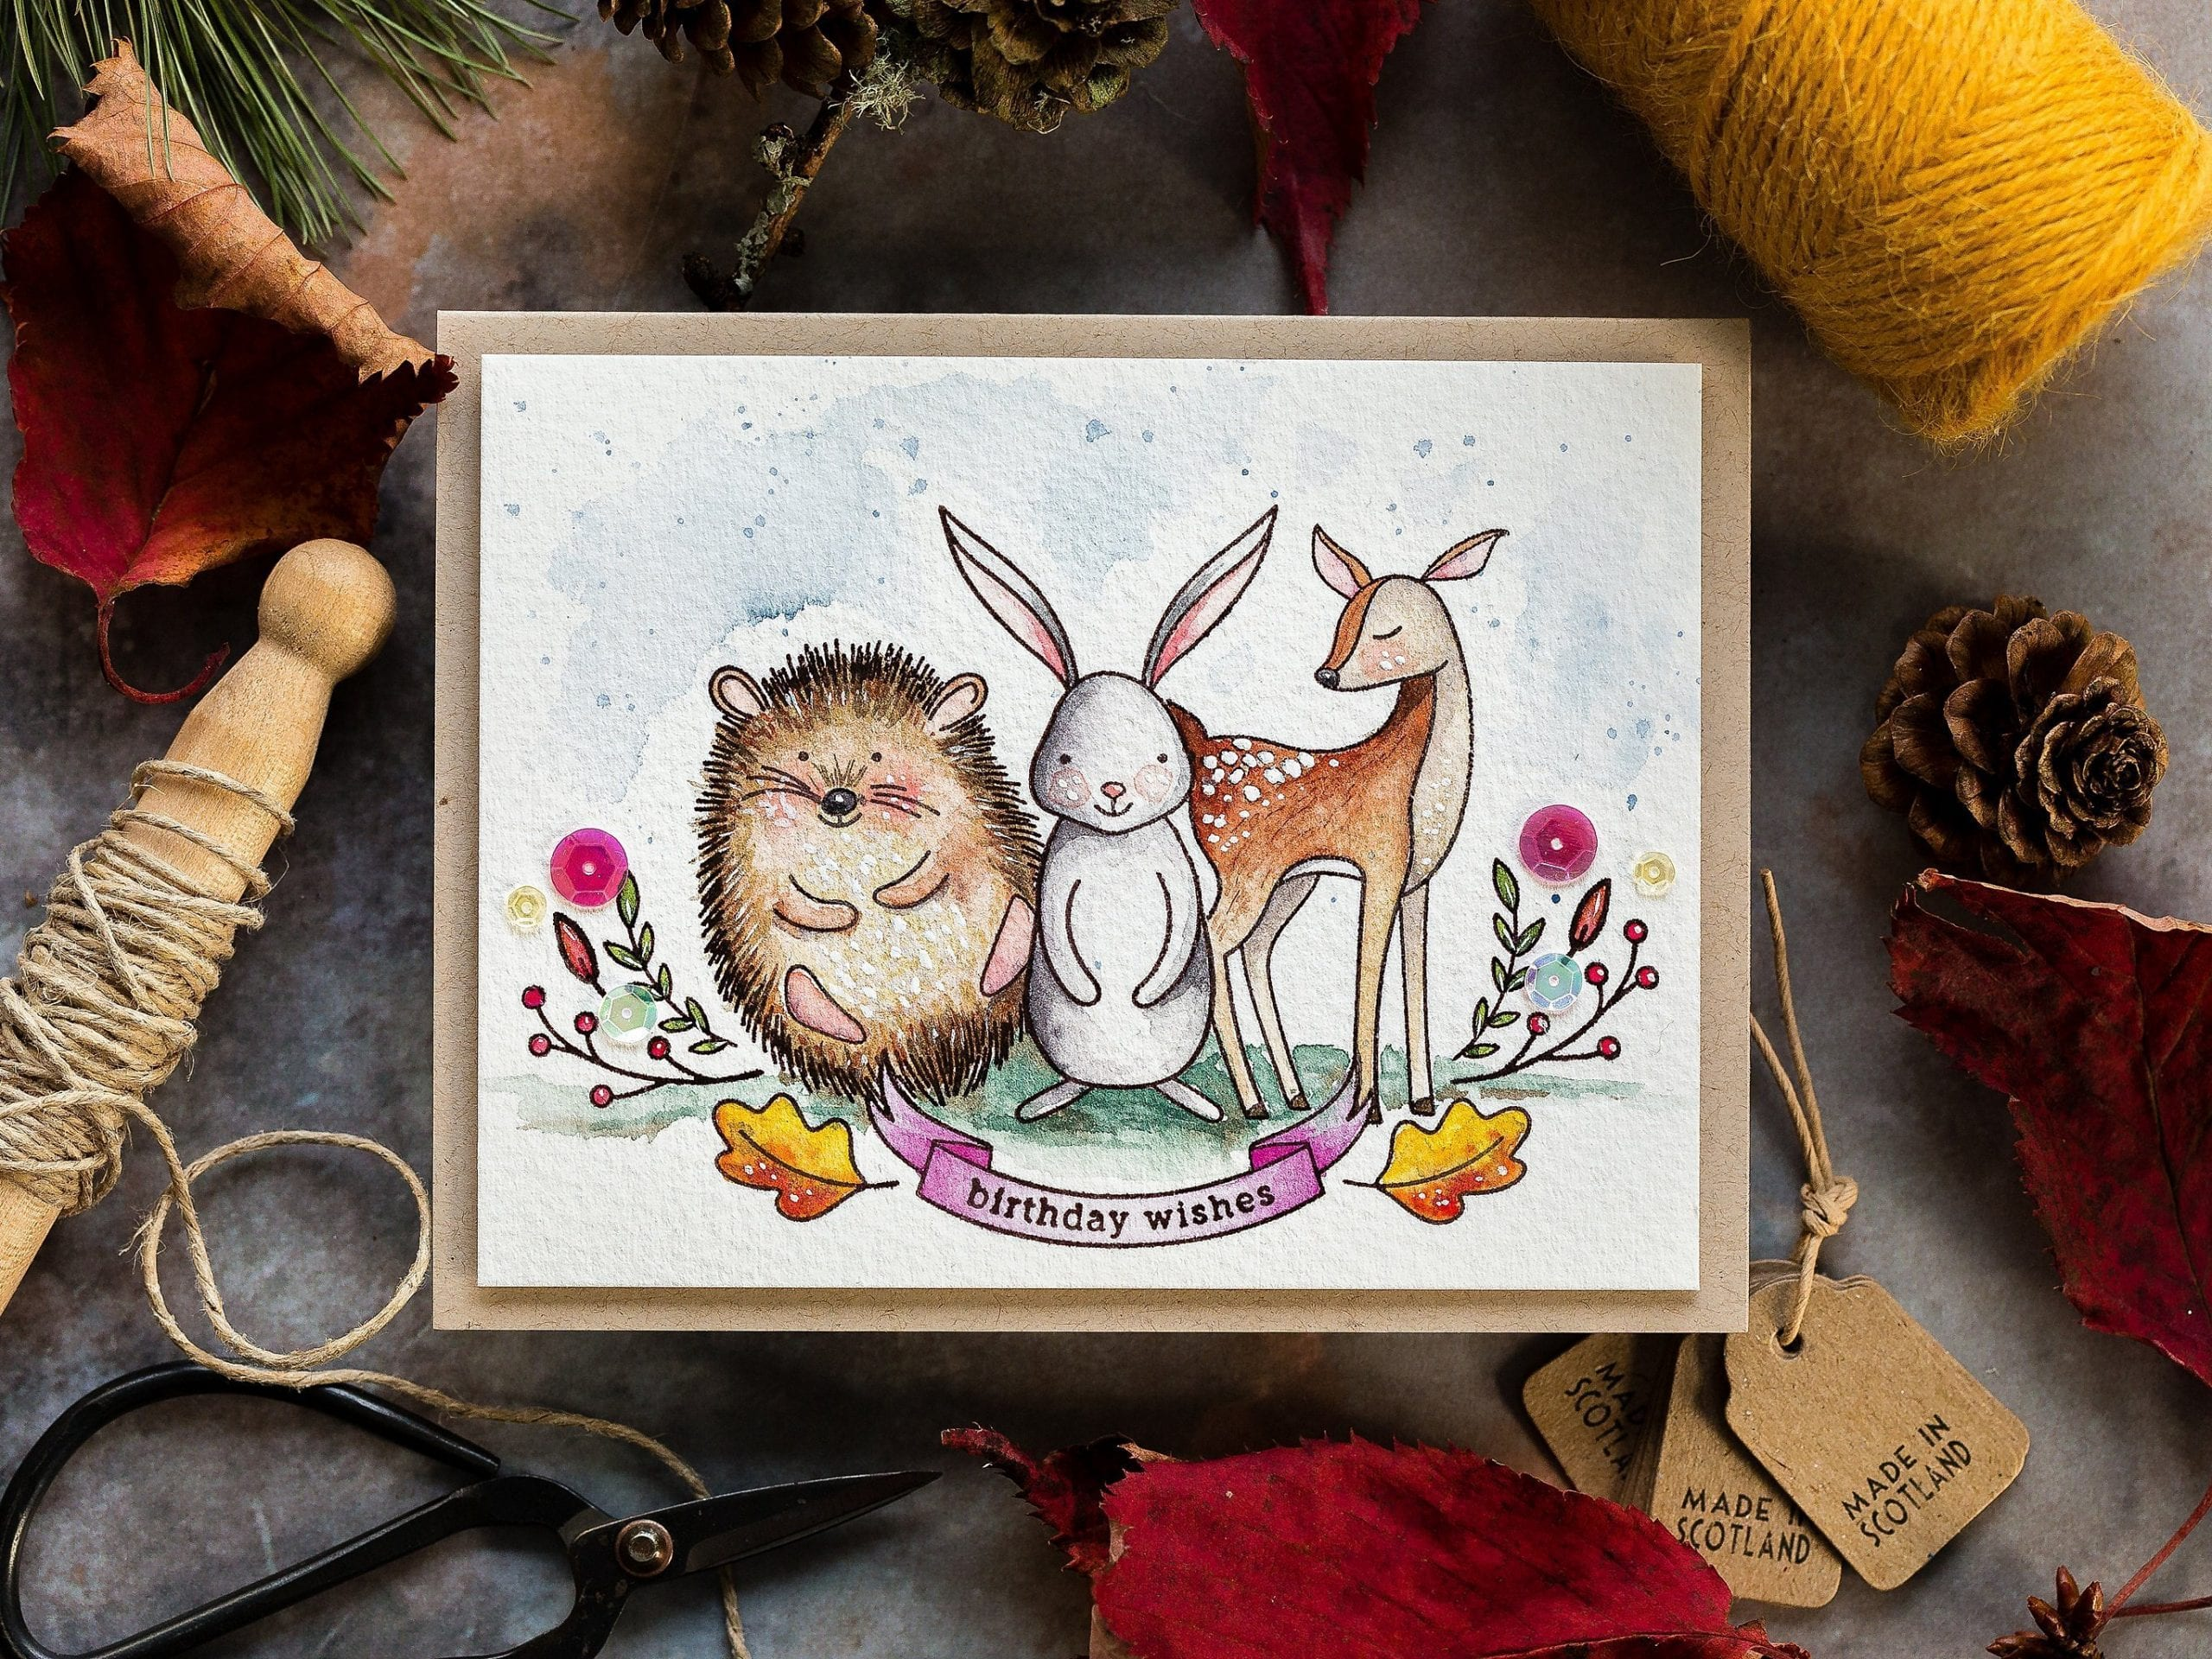 Watercoloured woodland critters (hedgehog, rabbit, deer) handmade birthday greeting card by Debby Hughes using supplies from Simon Says Stamp.